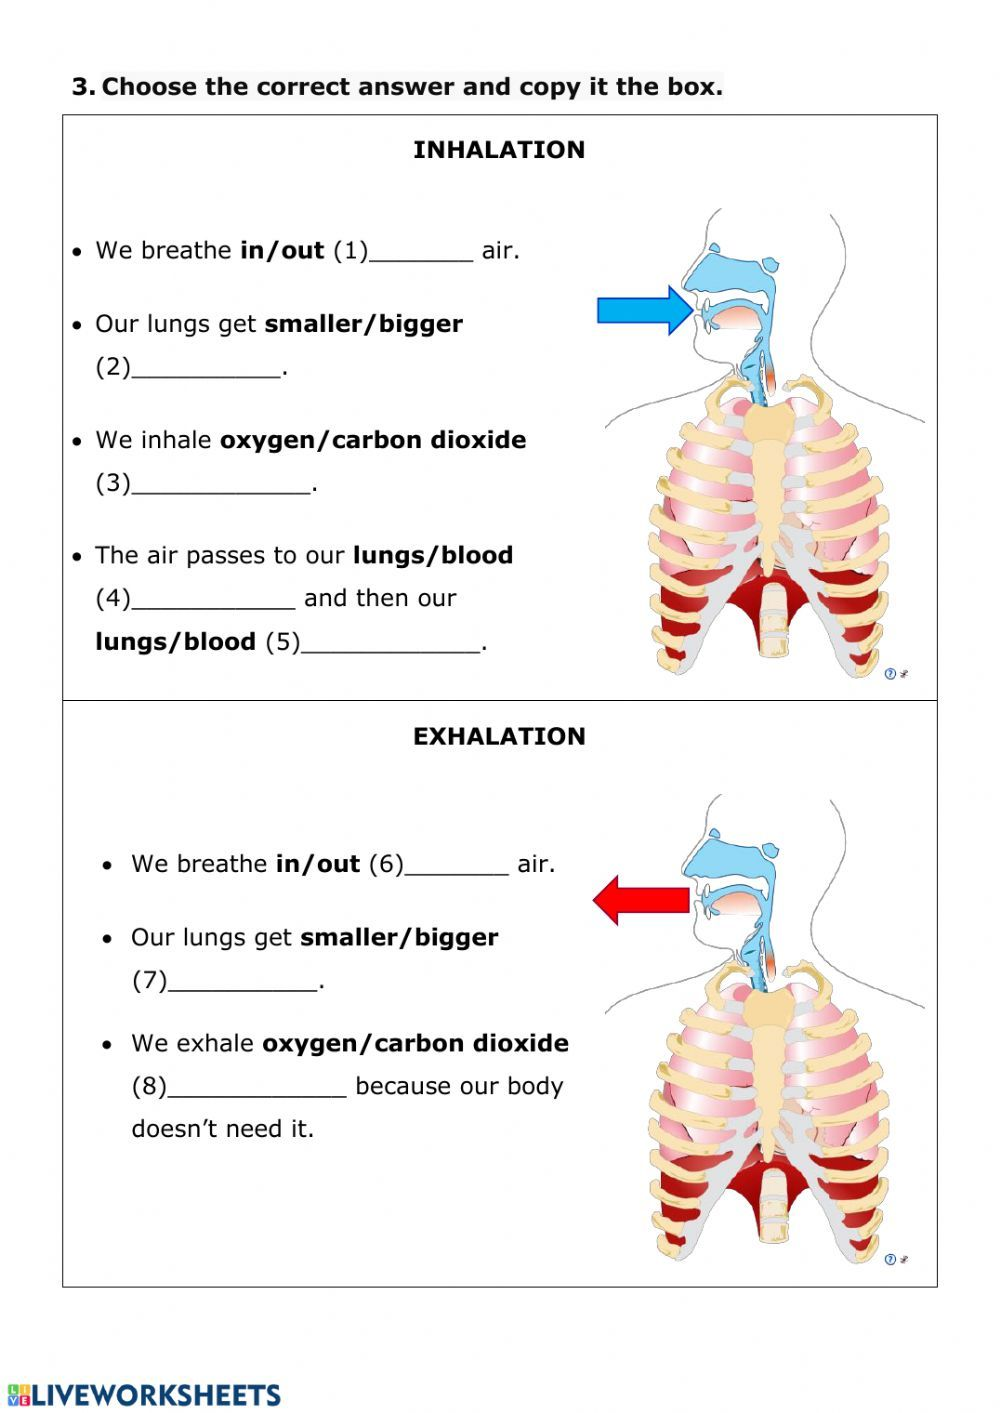 Nutrition 3 Respiratory System Interactive Worksheet Respiratory System Body Systems Worksheets Respiratory System Activities